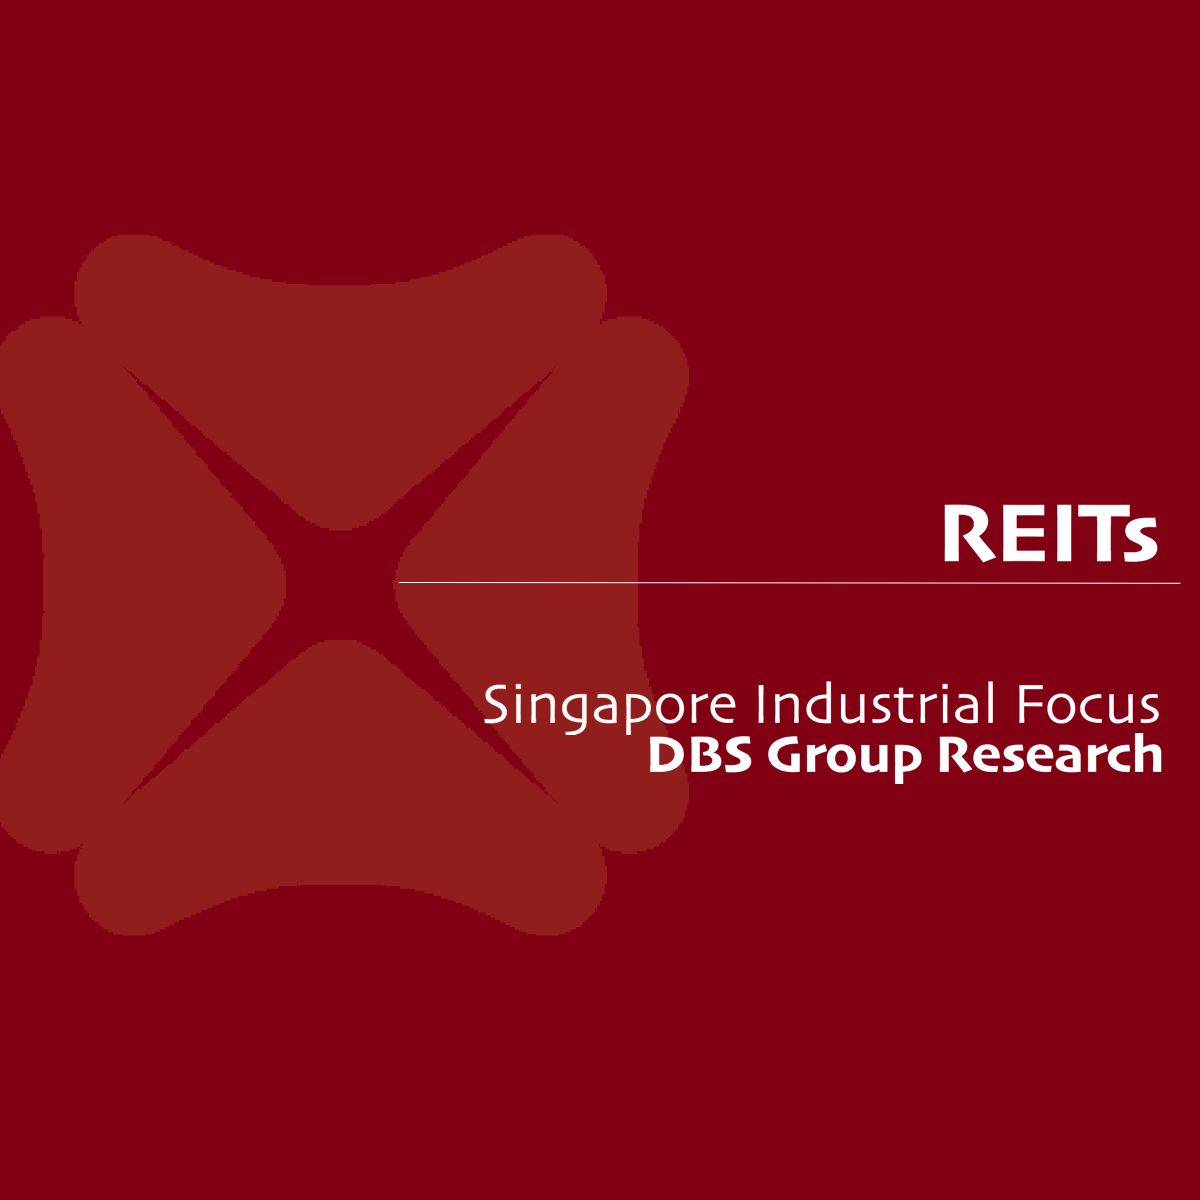 Singapore REITs - DBS Vickers 2018-02-20: Take The Leap Of Faith